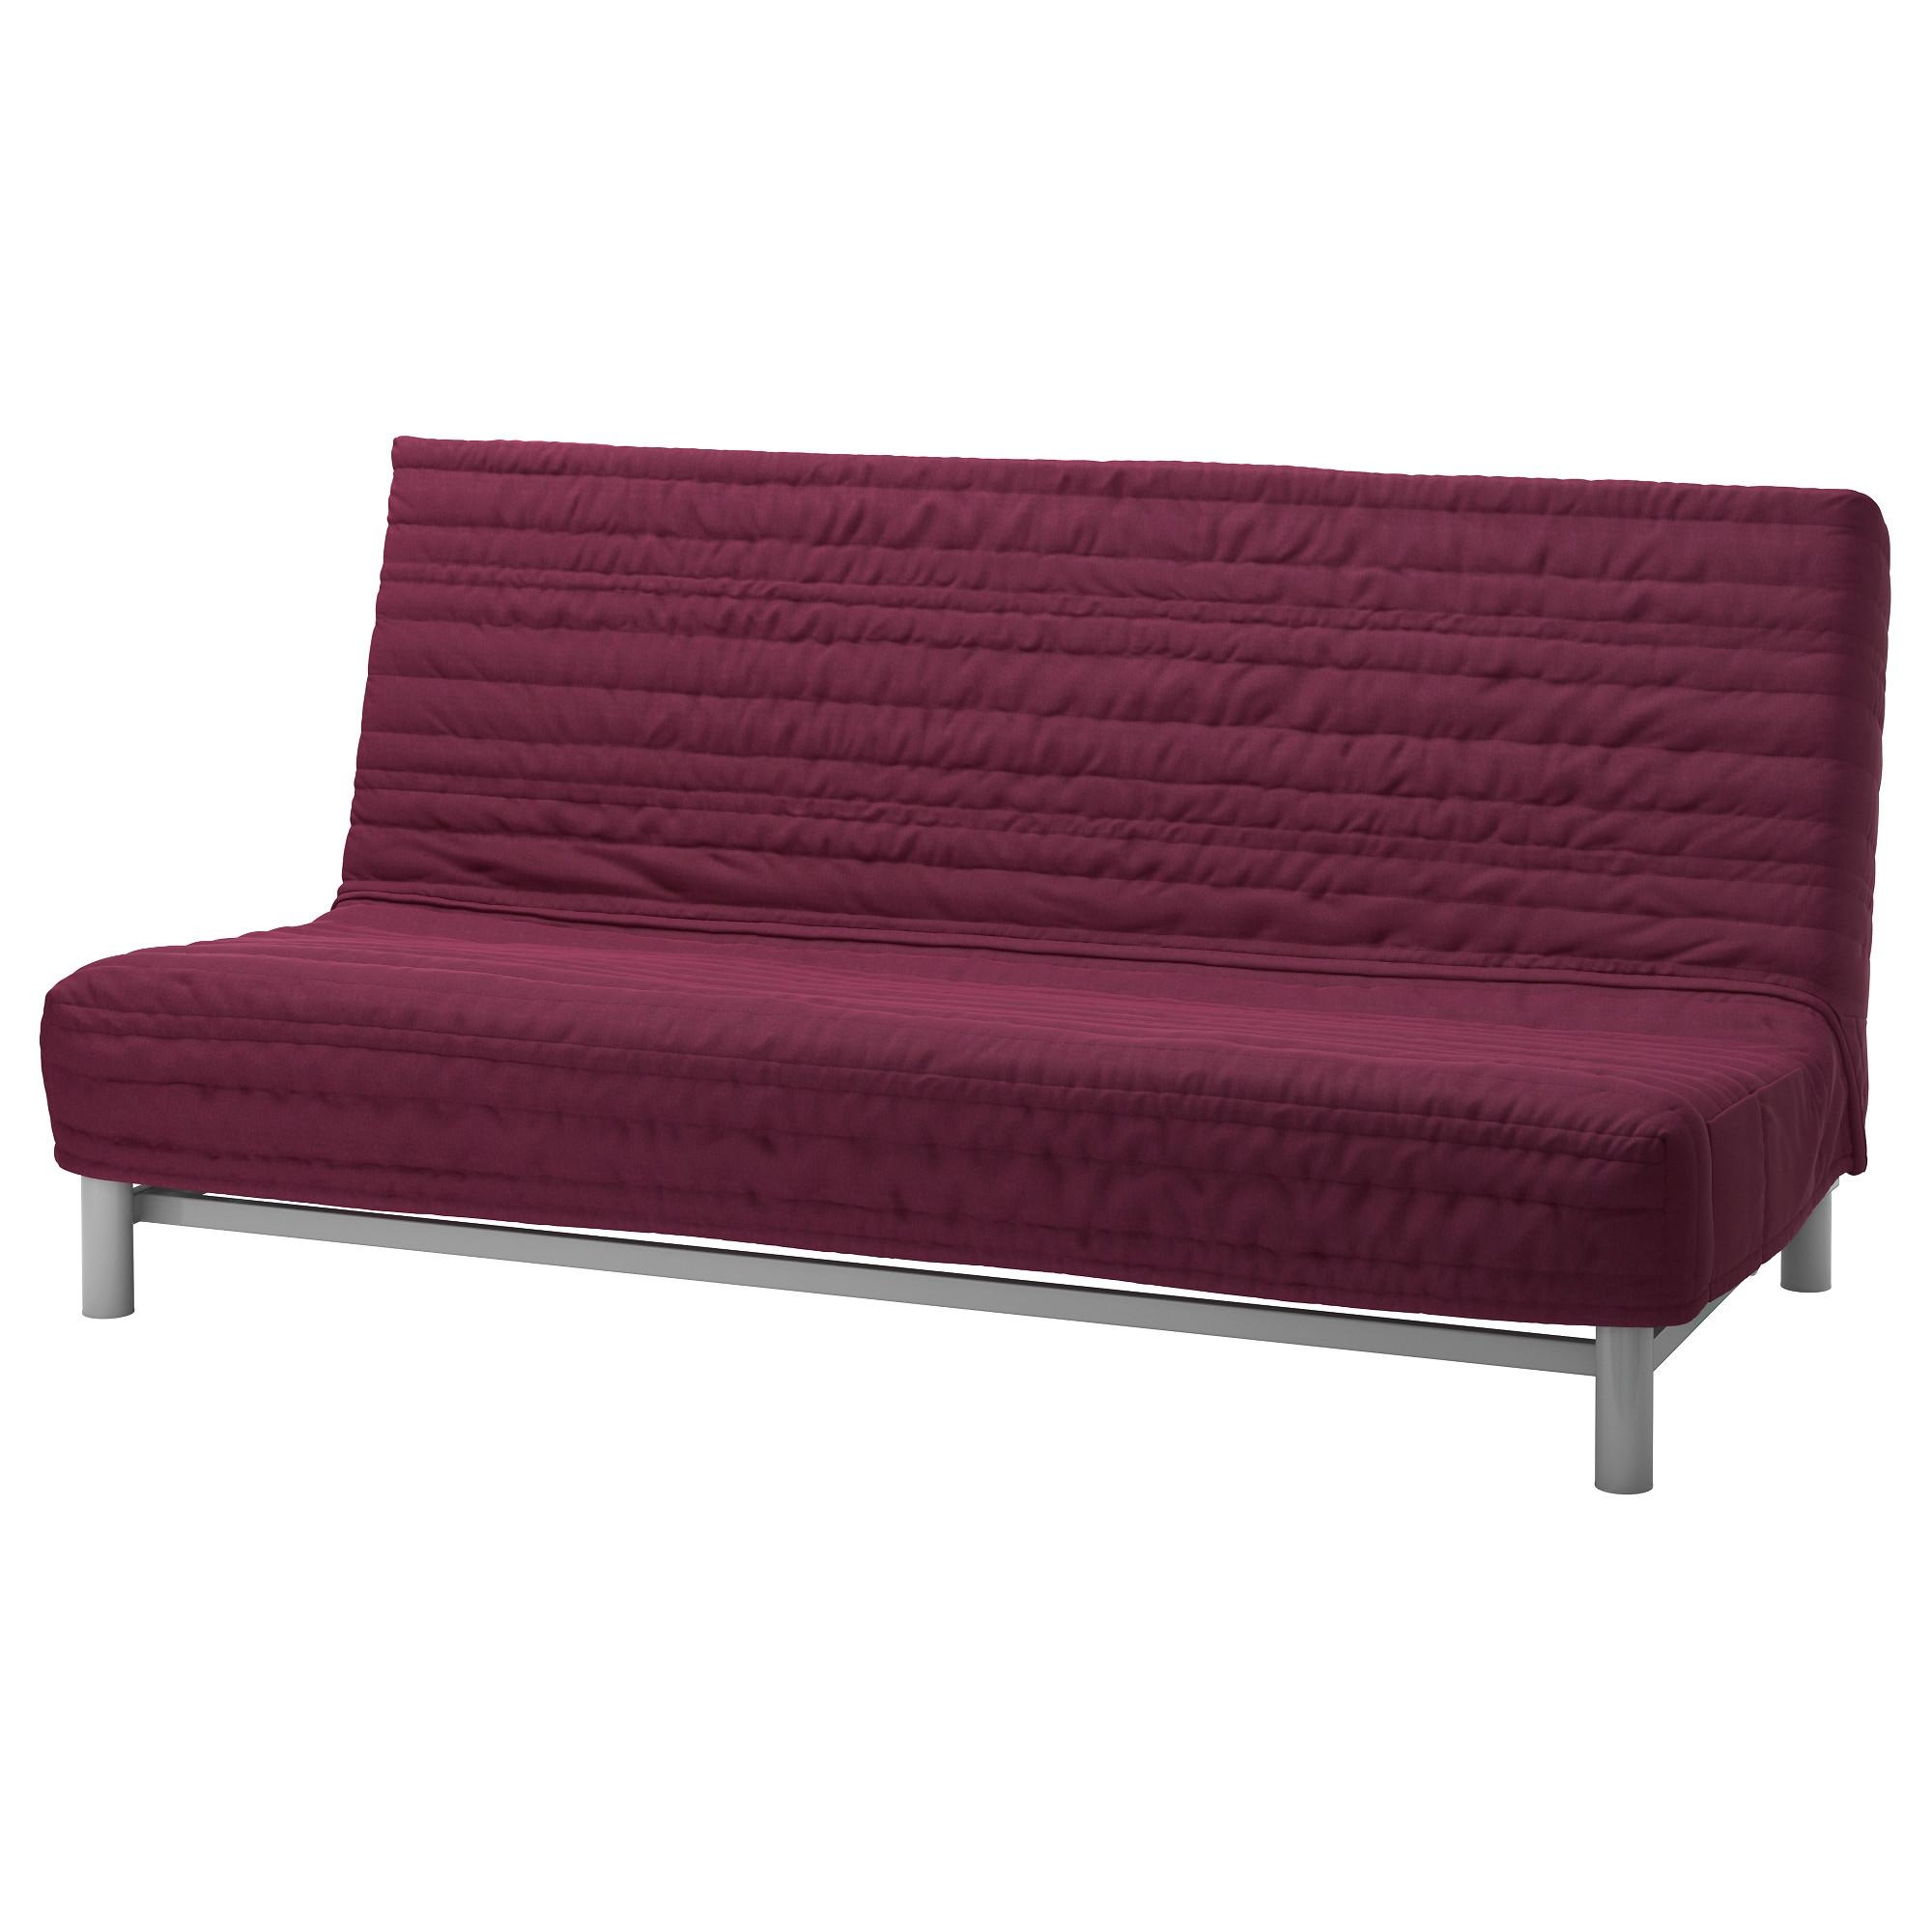 Beddinge Lövås Sleeper Sofa – Knisa Cerise – Ikea Regarding Sleeper Sofas (Image 1 of 20)